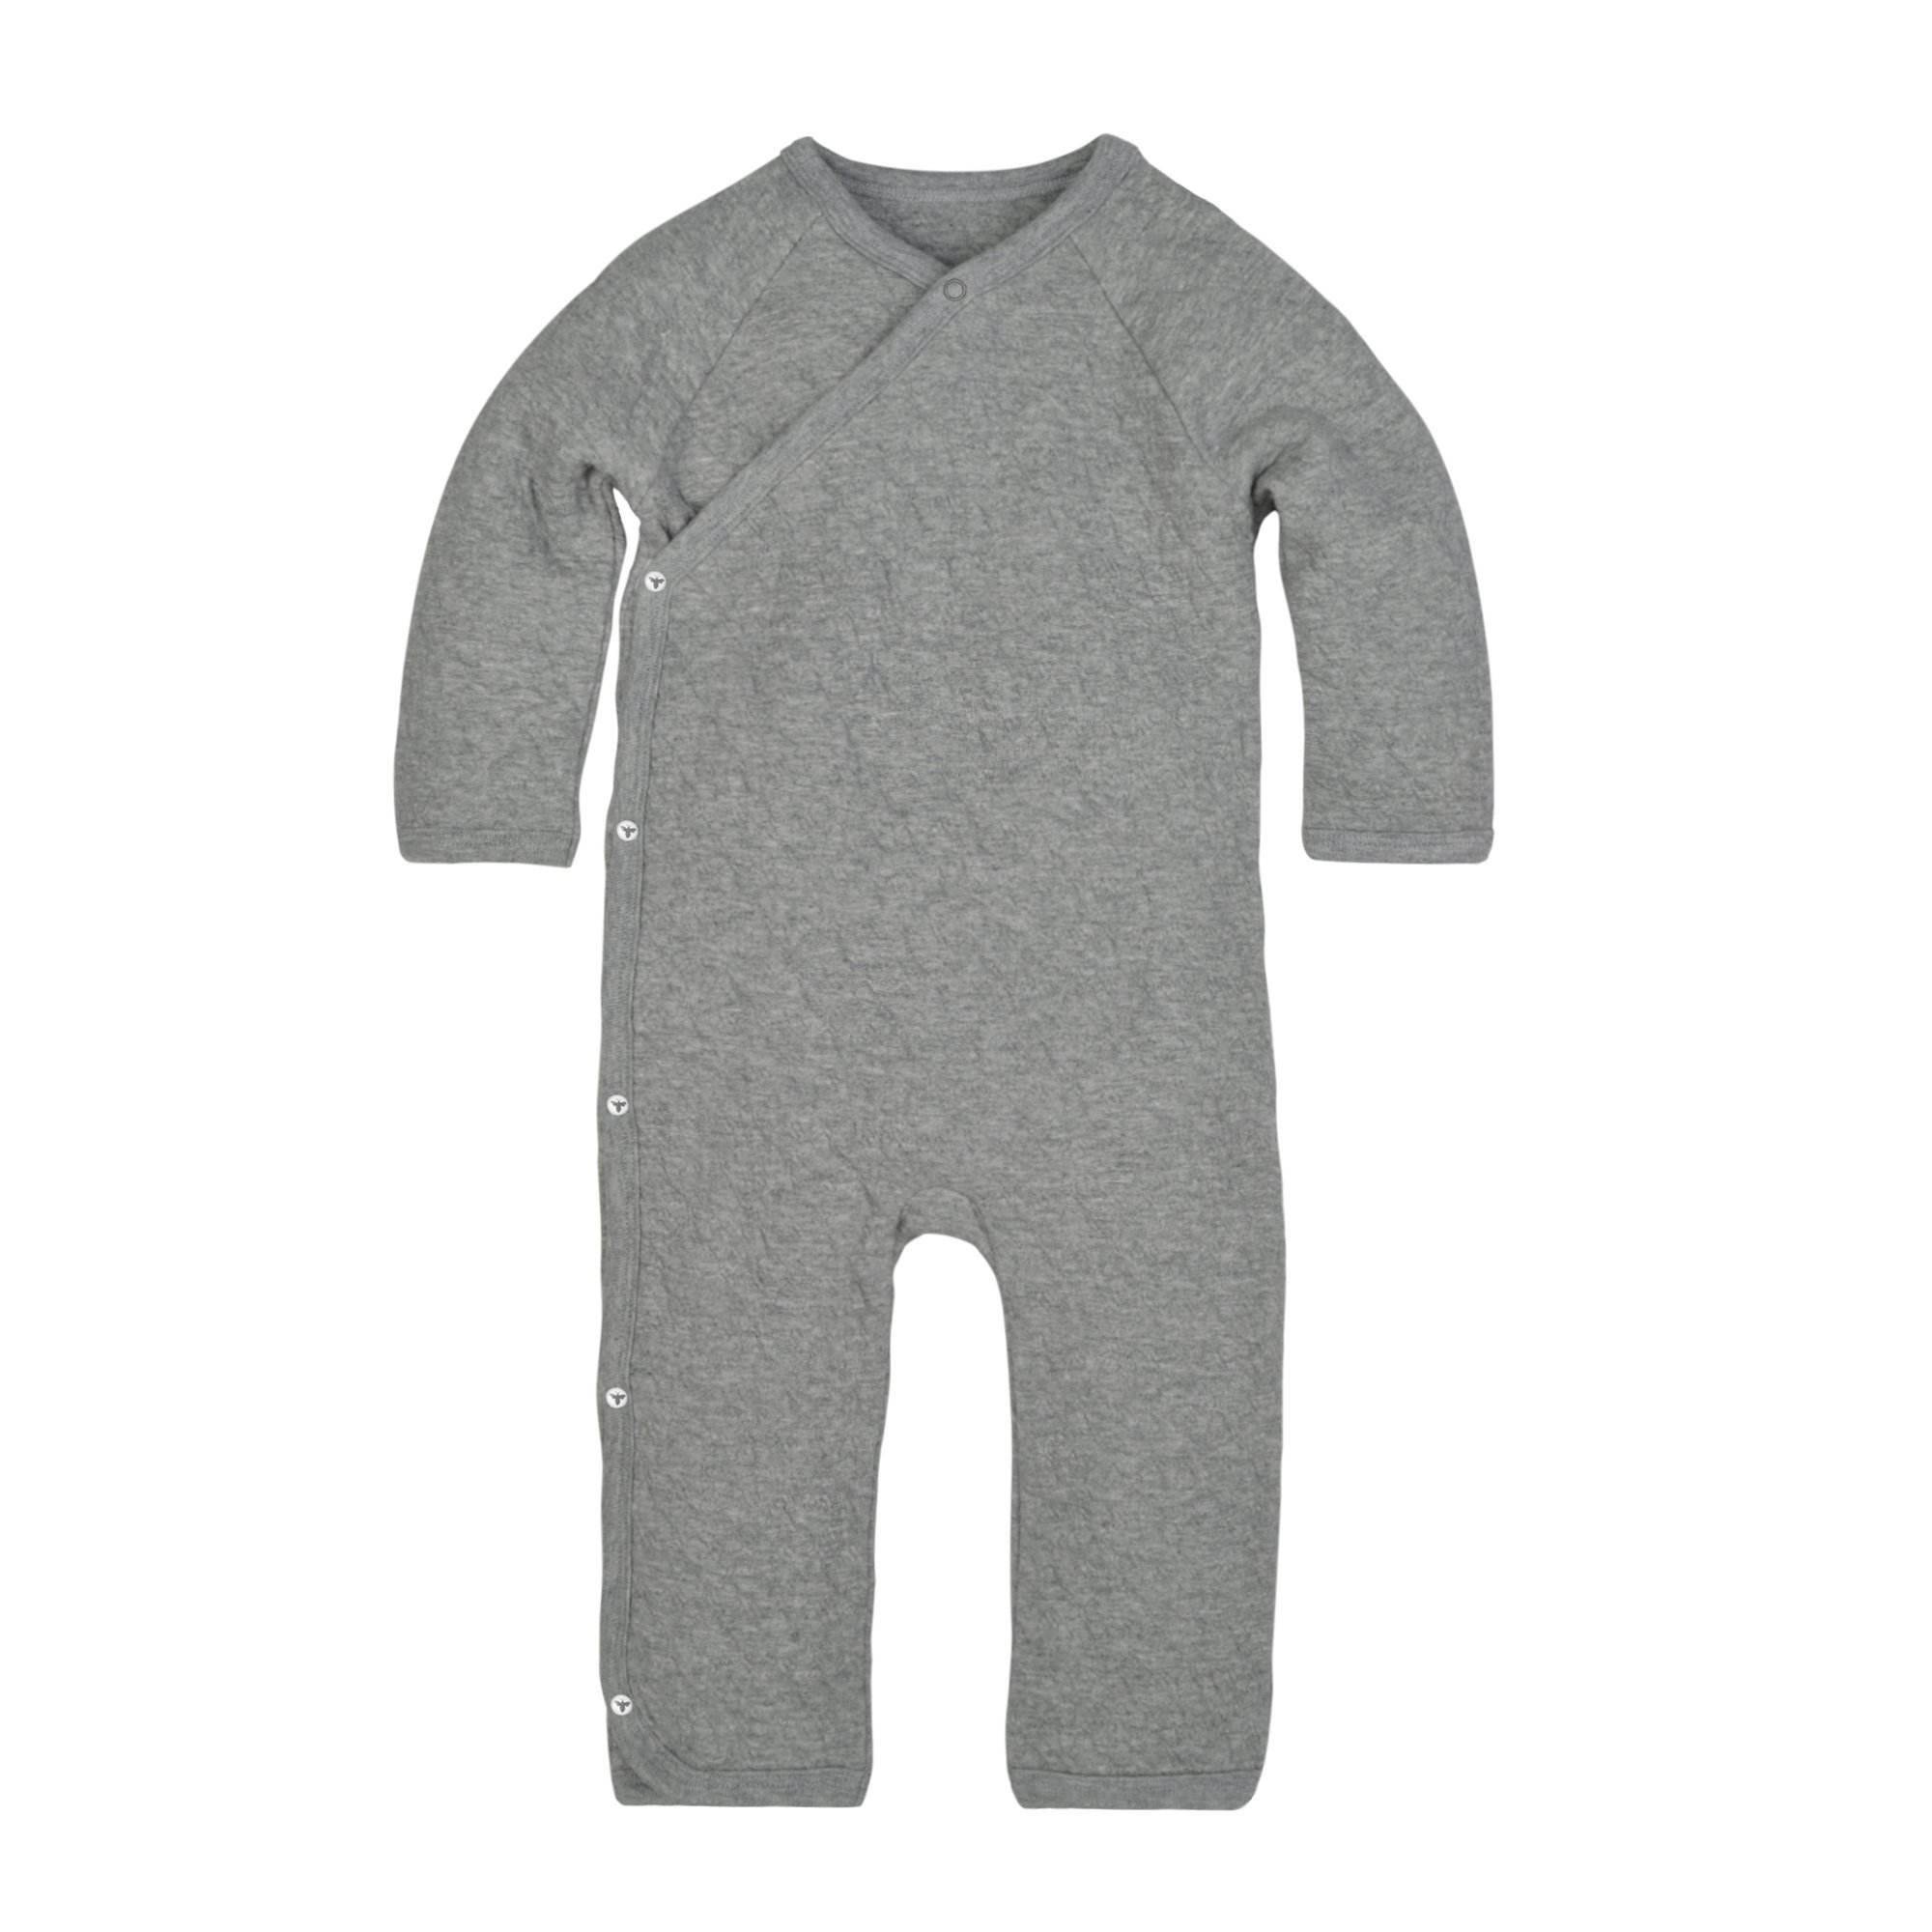 Burt's Bees Baby Unisex Baby Organic One-Piece Romper Coverall, Heather Grey Quilted Kimono, 18 Months